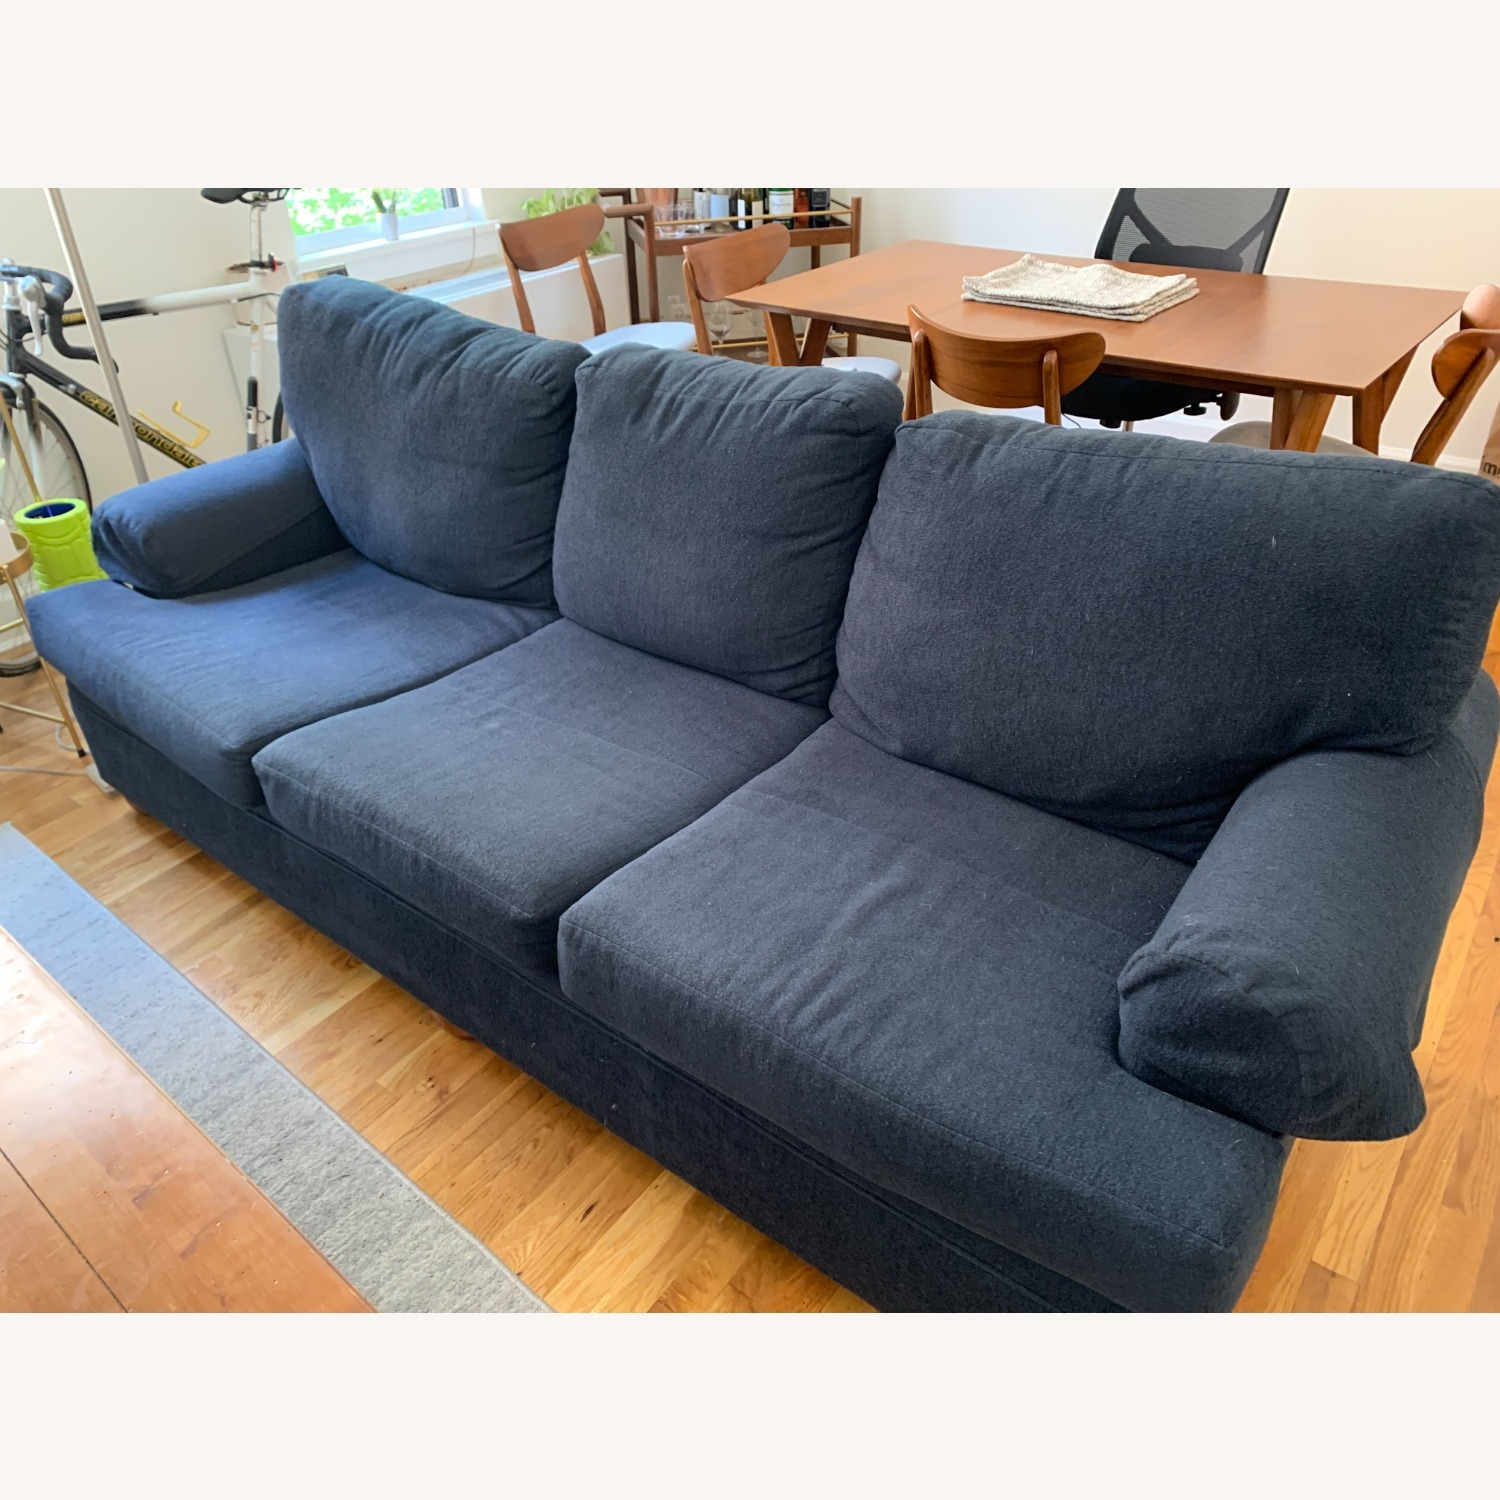 Ethan Allen Couch - image-1